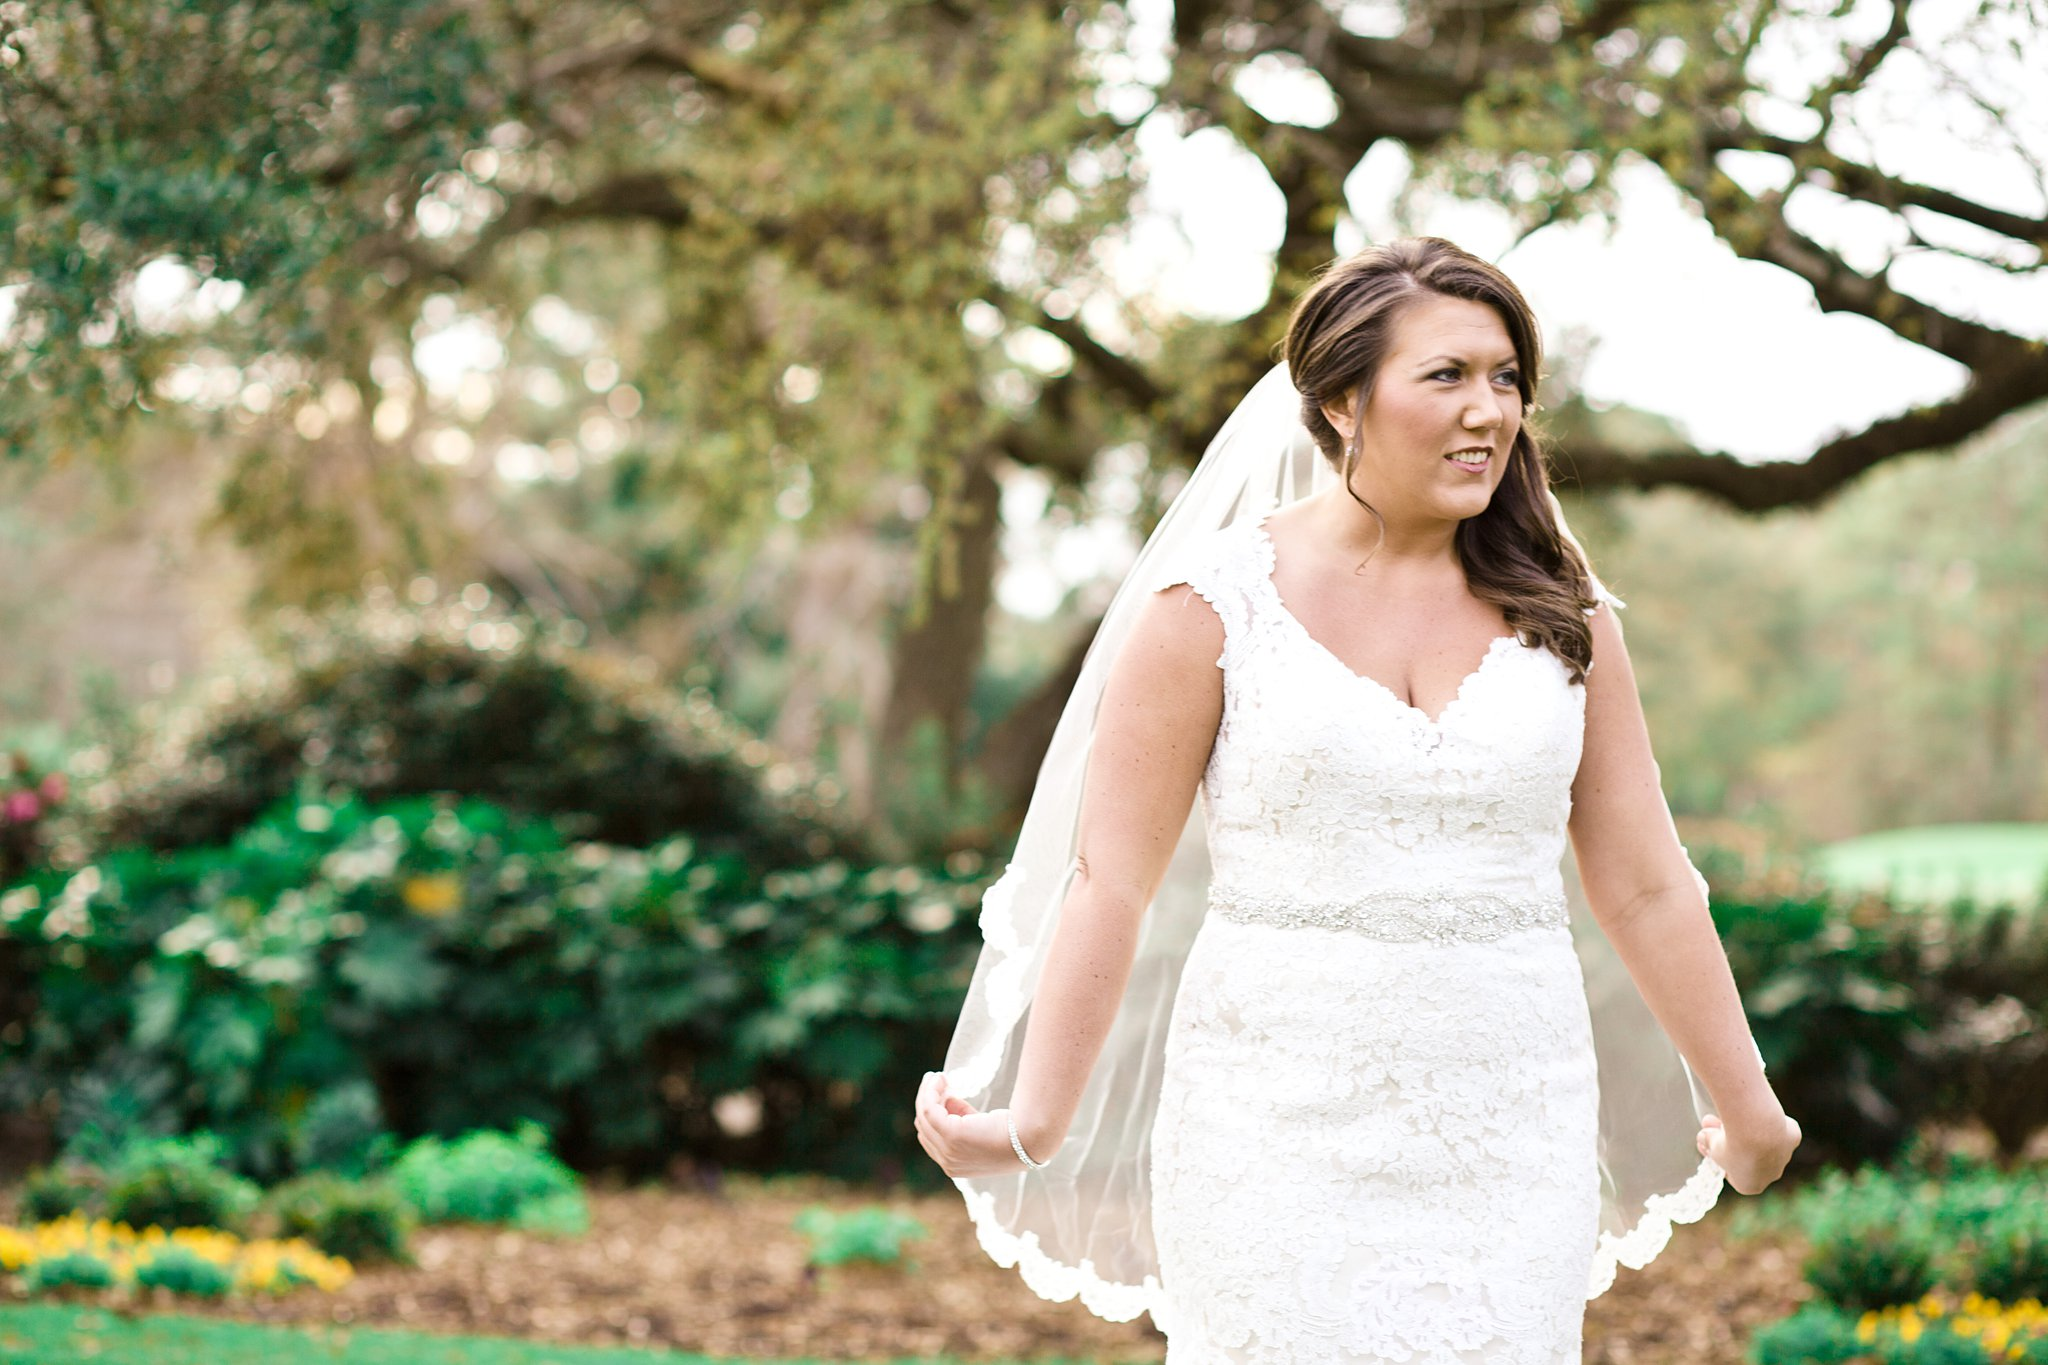 litchfield-golf-country-club-bridal-session-pawleys-island-sc-photos_0127.jpg